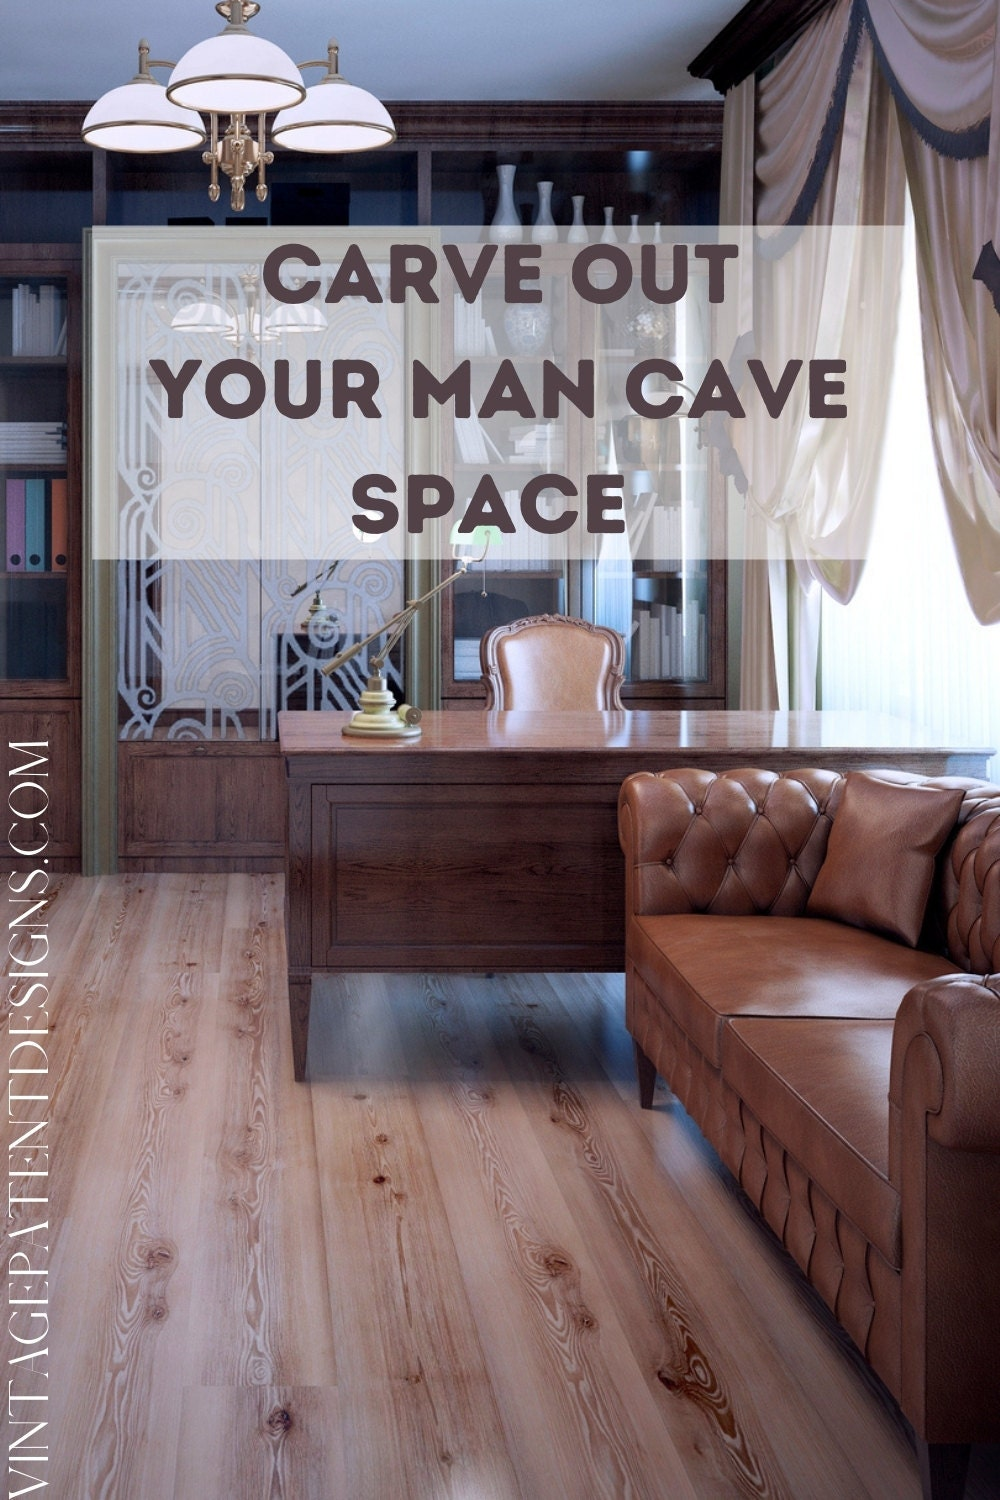 Maybe you have a whole room to carve out your man space?